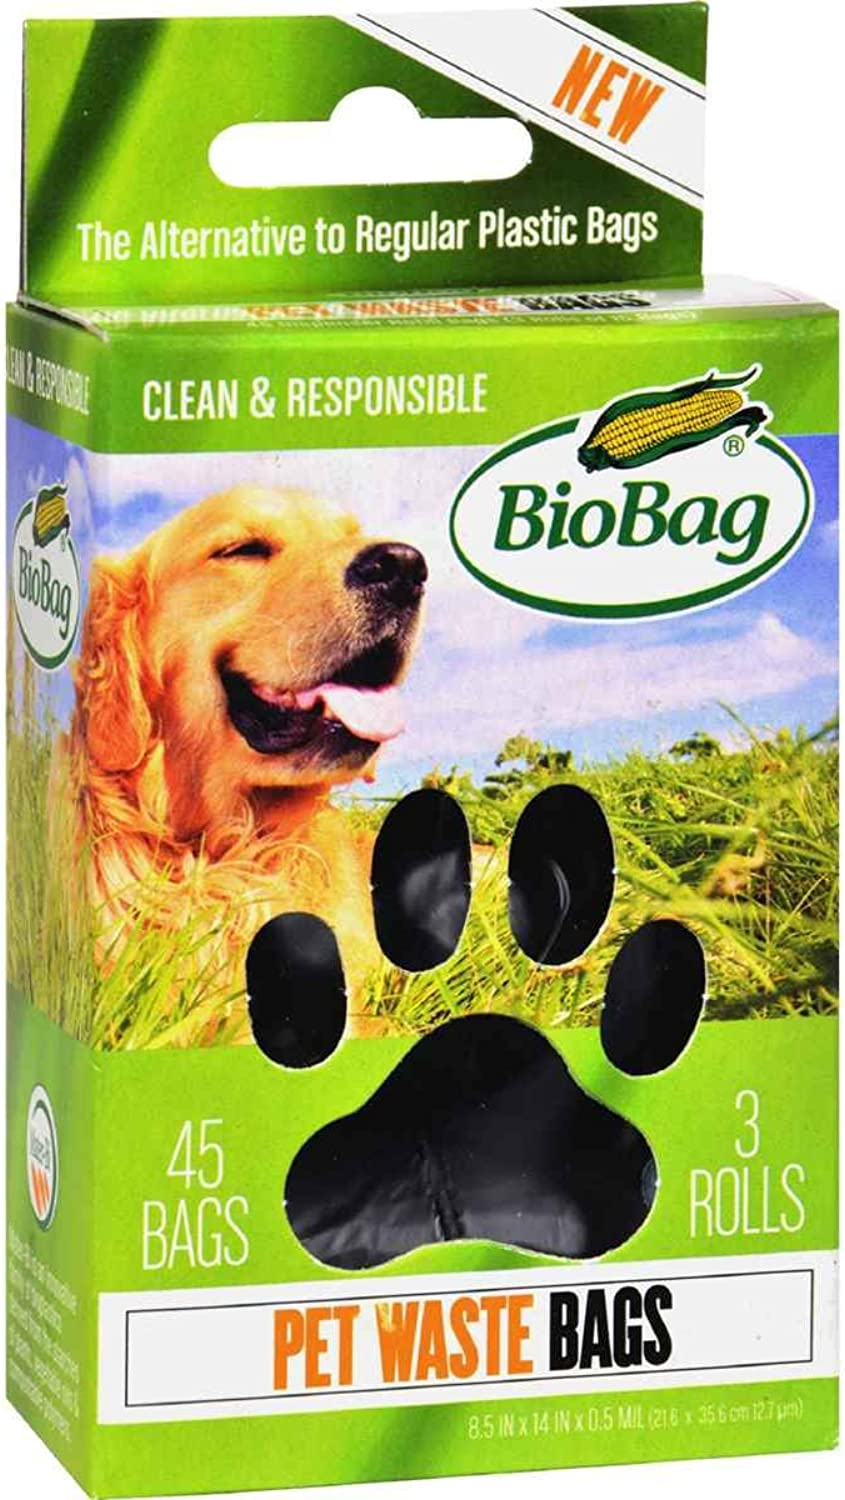 BioBag Dog   Pet Waste Bags on a Roll 45 Bags Each Box (Case of 12) Total 540 Bags